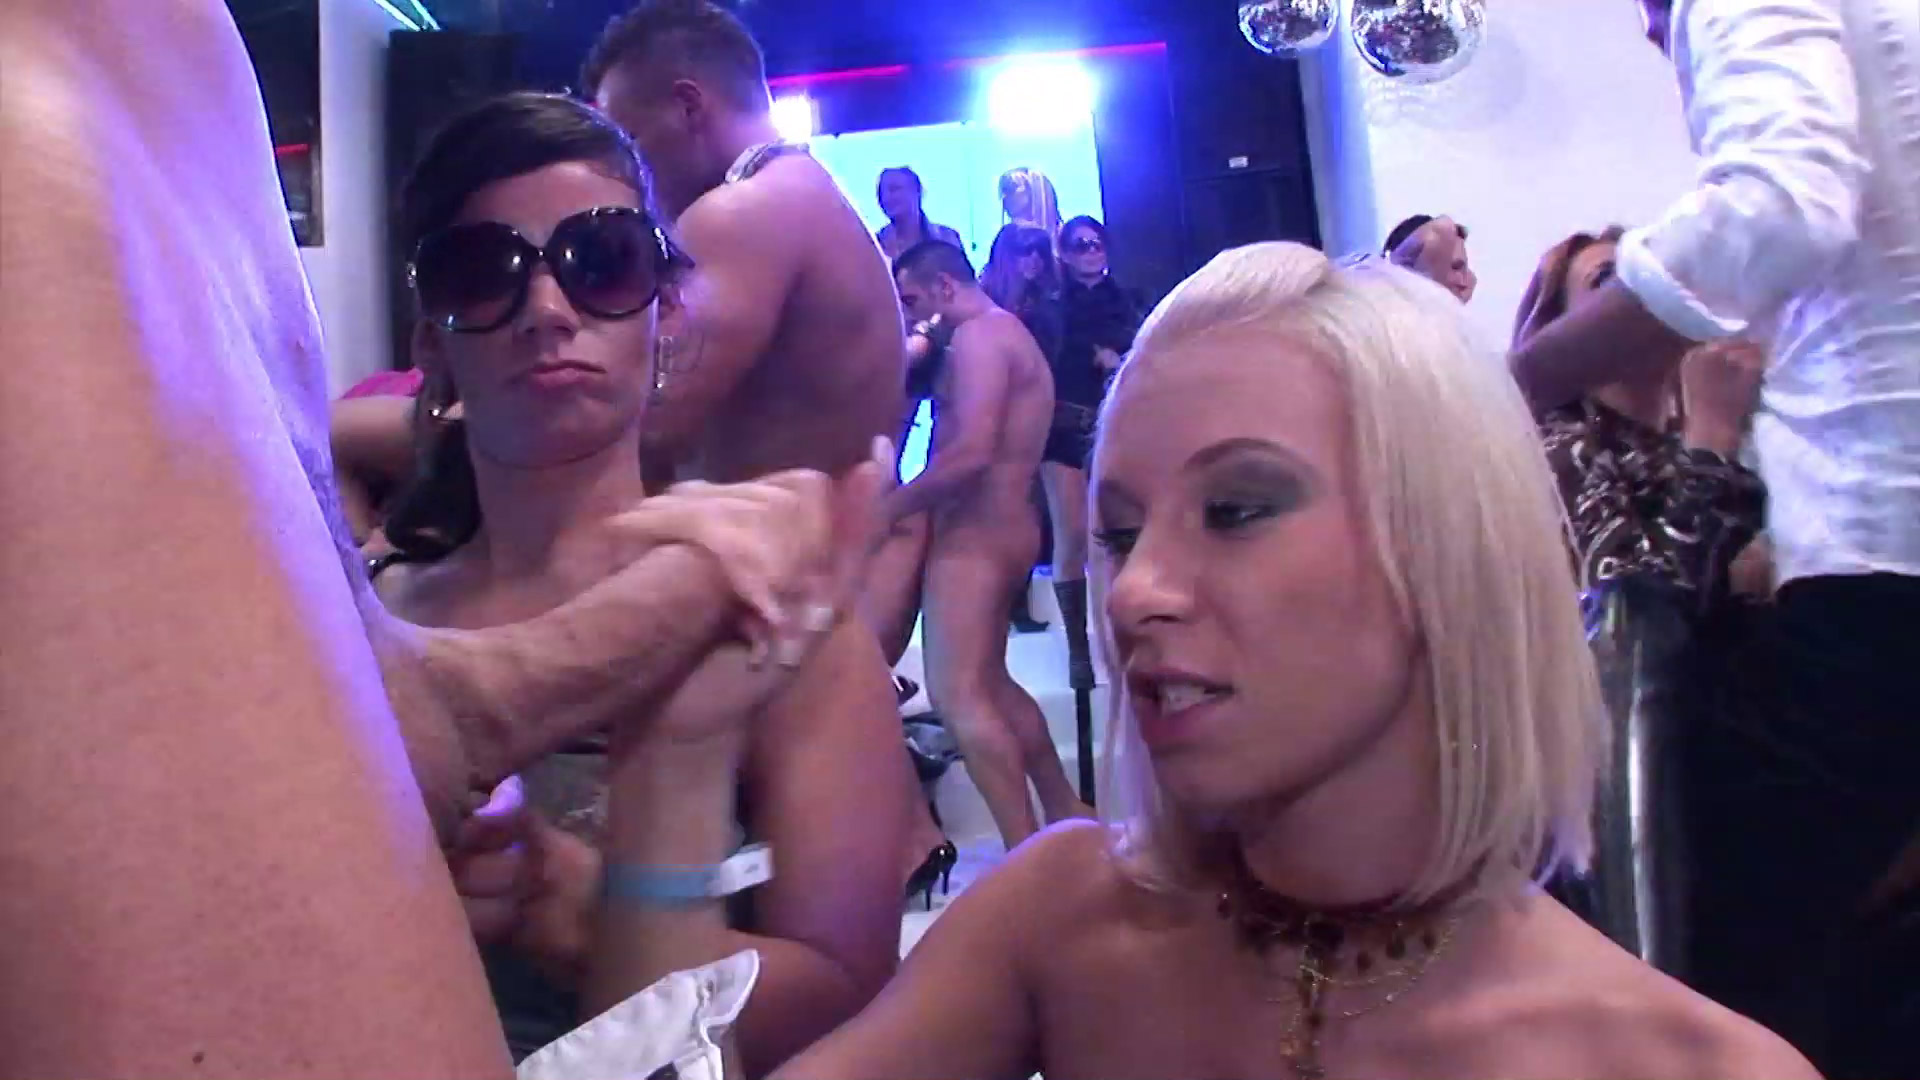 private swingerparty bdsm stories kostenlos